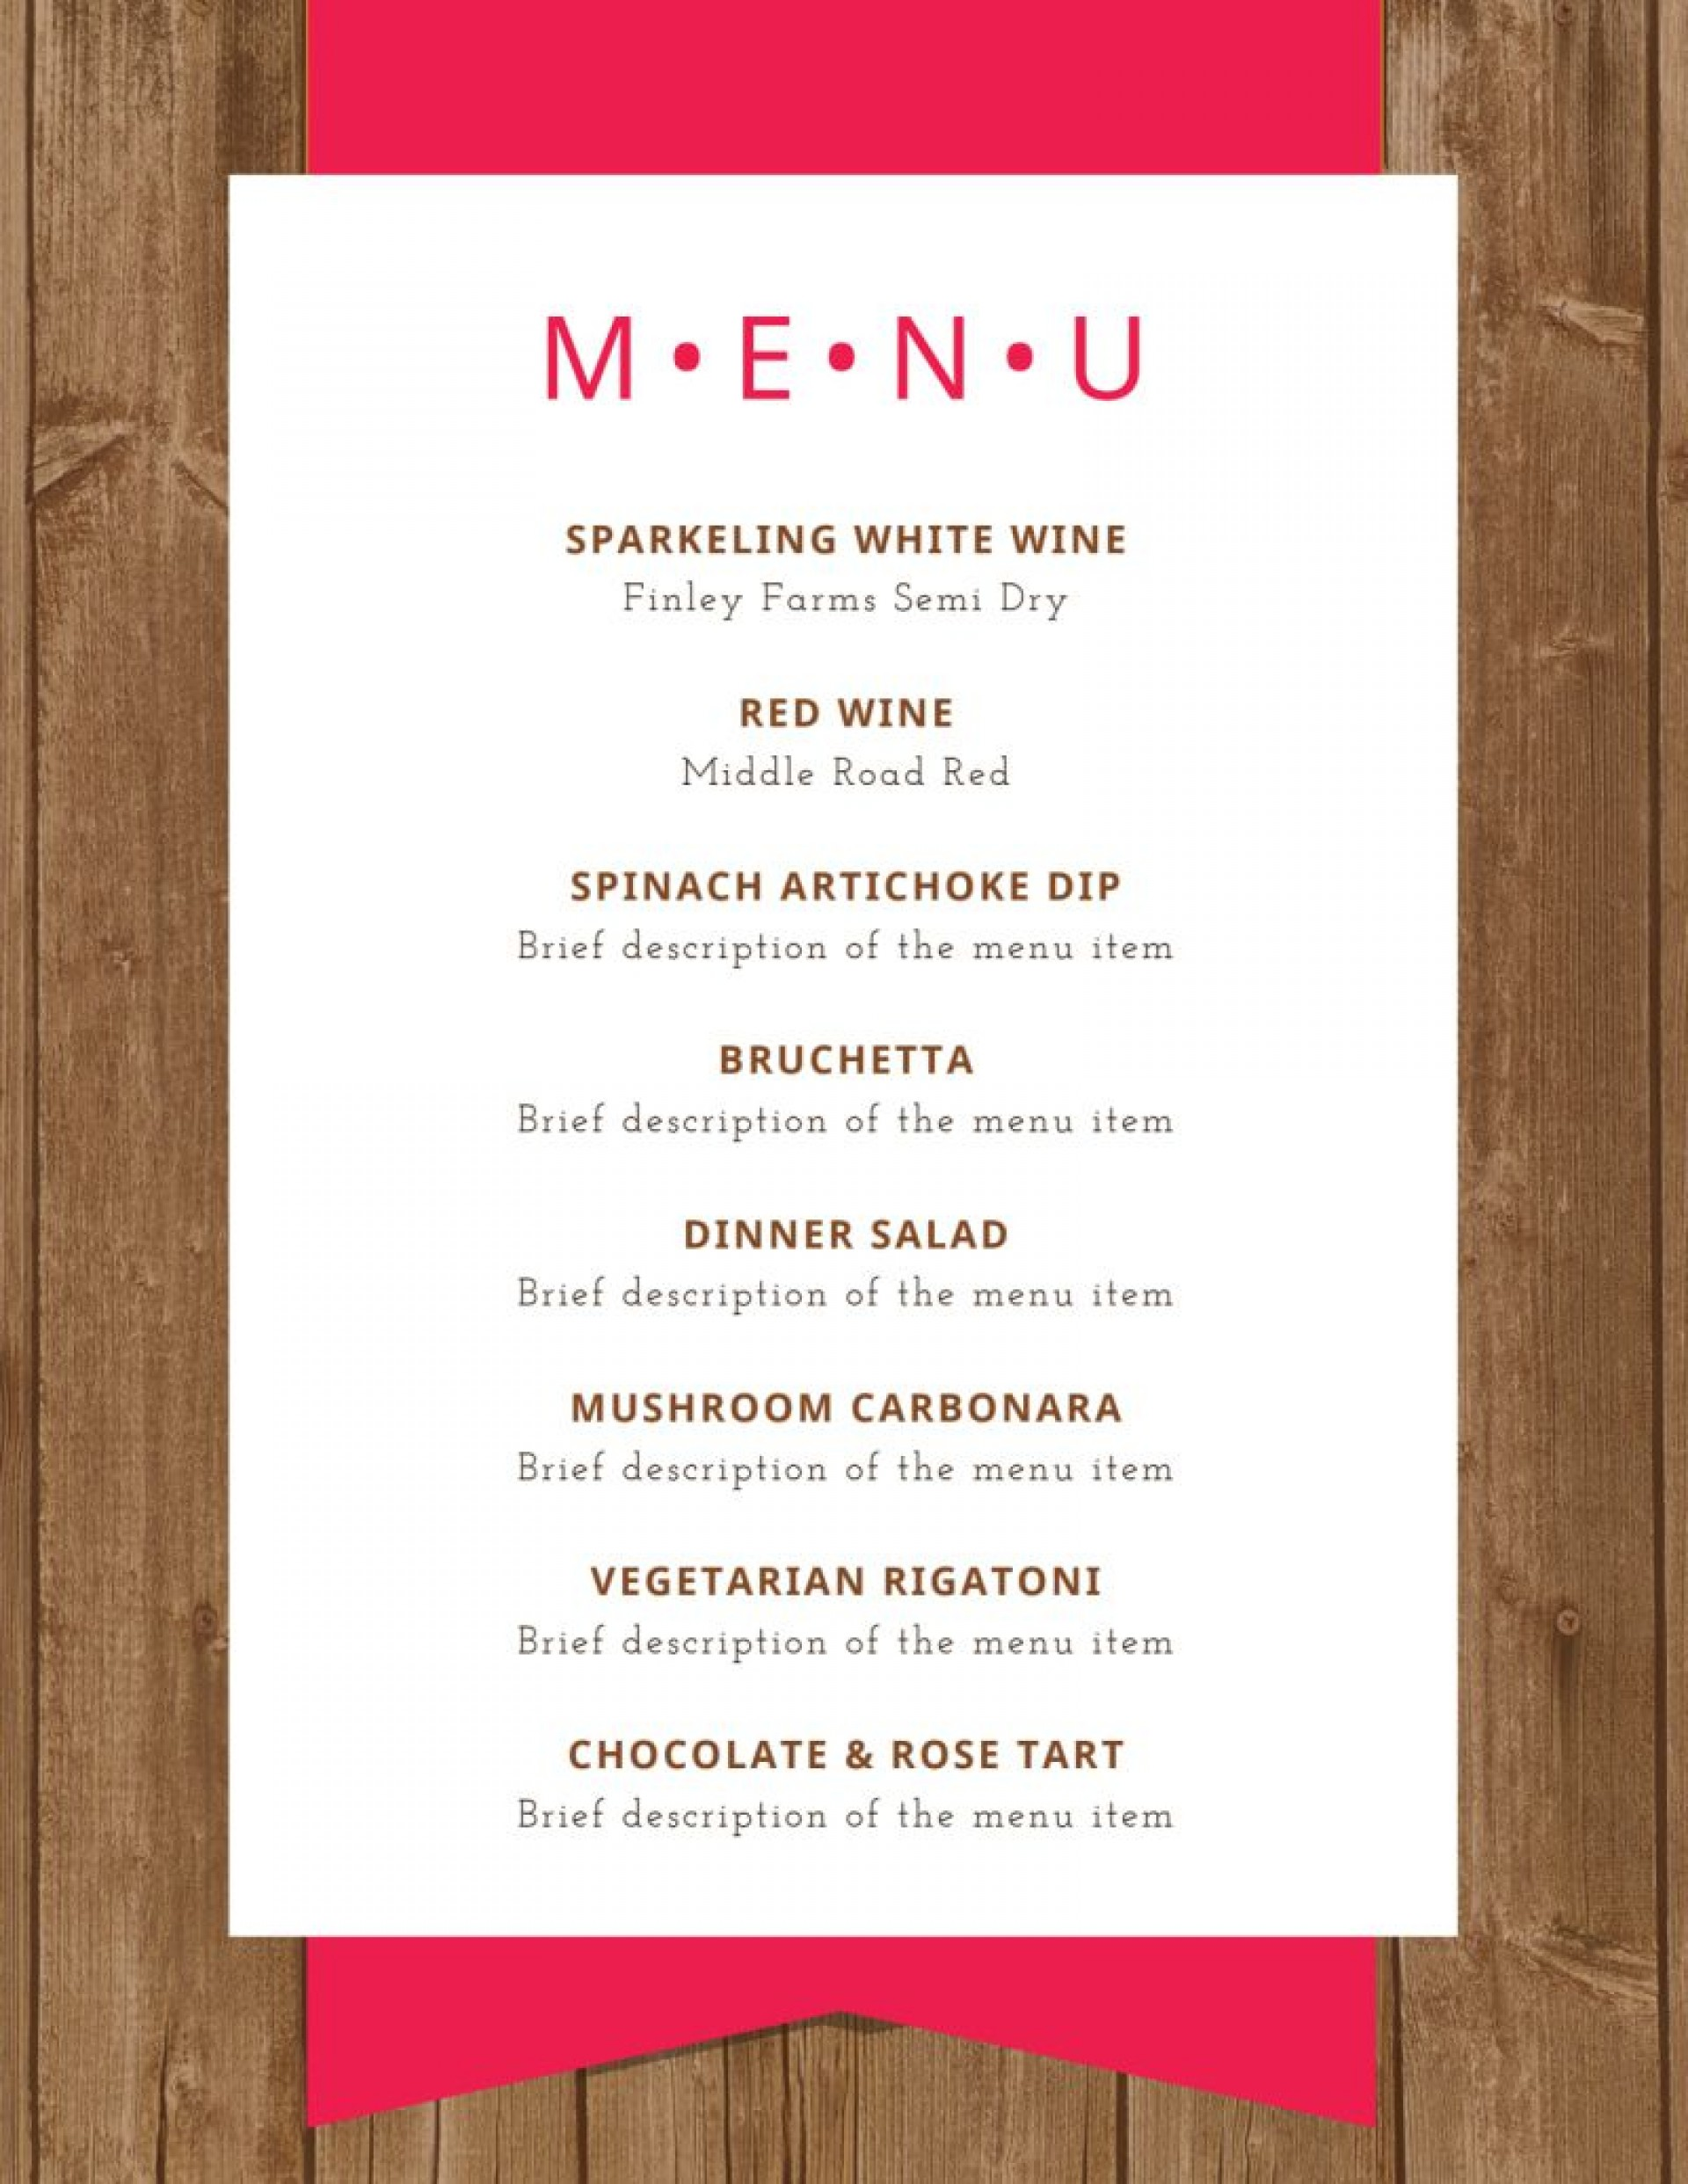 009 Awful Dinner Party Menu Template Highest Quality  Word Elegant Free Google Doc1920